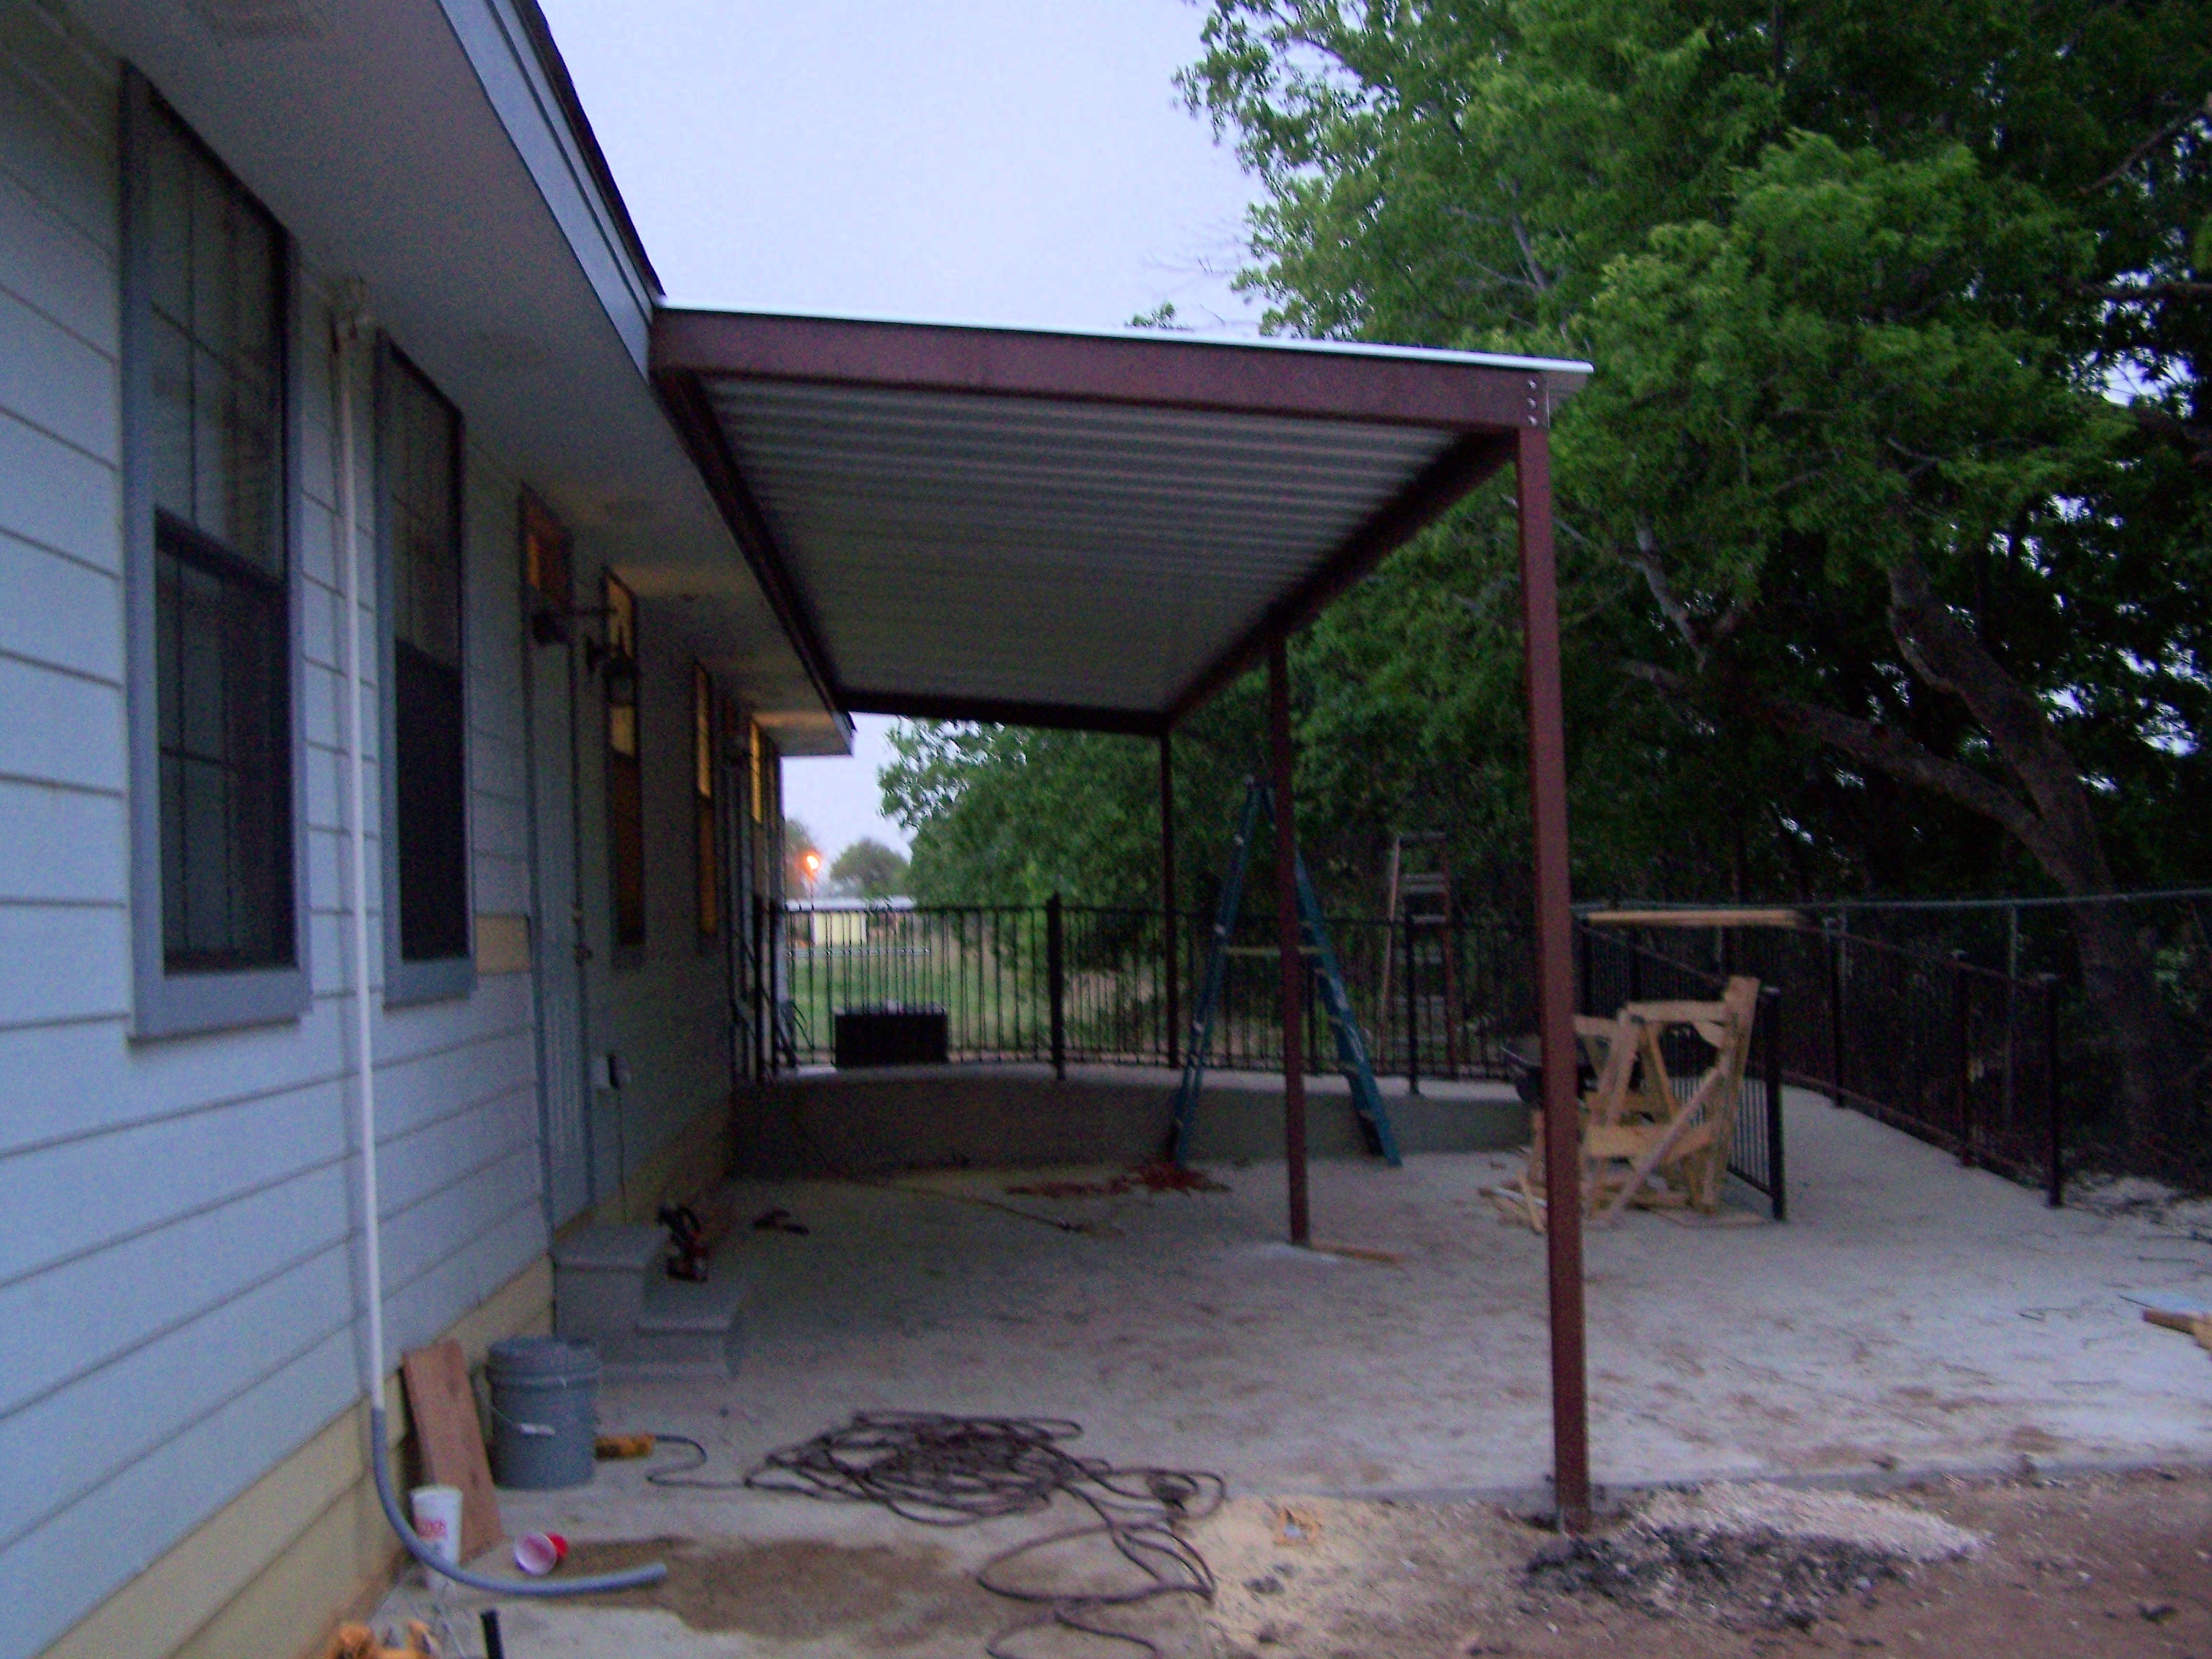 Commercial Steel Carports : Commercial steel awning new braunfels texas carport